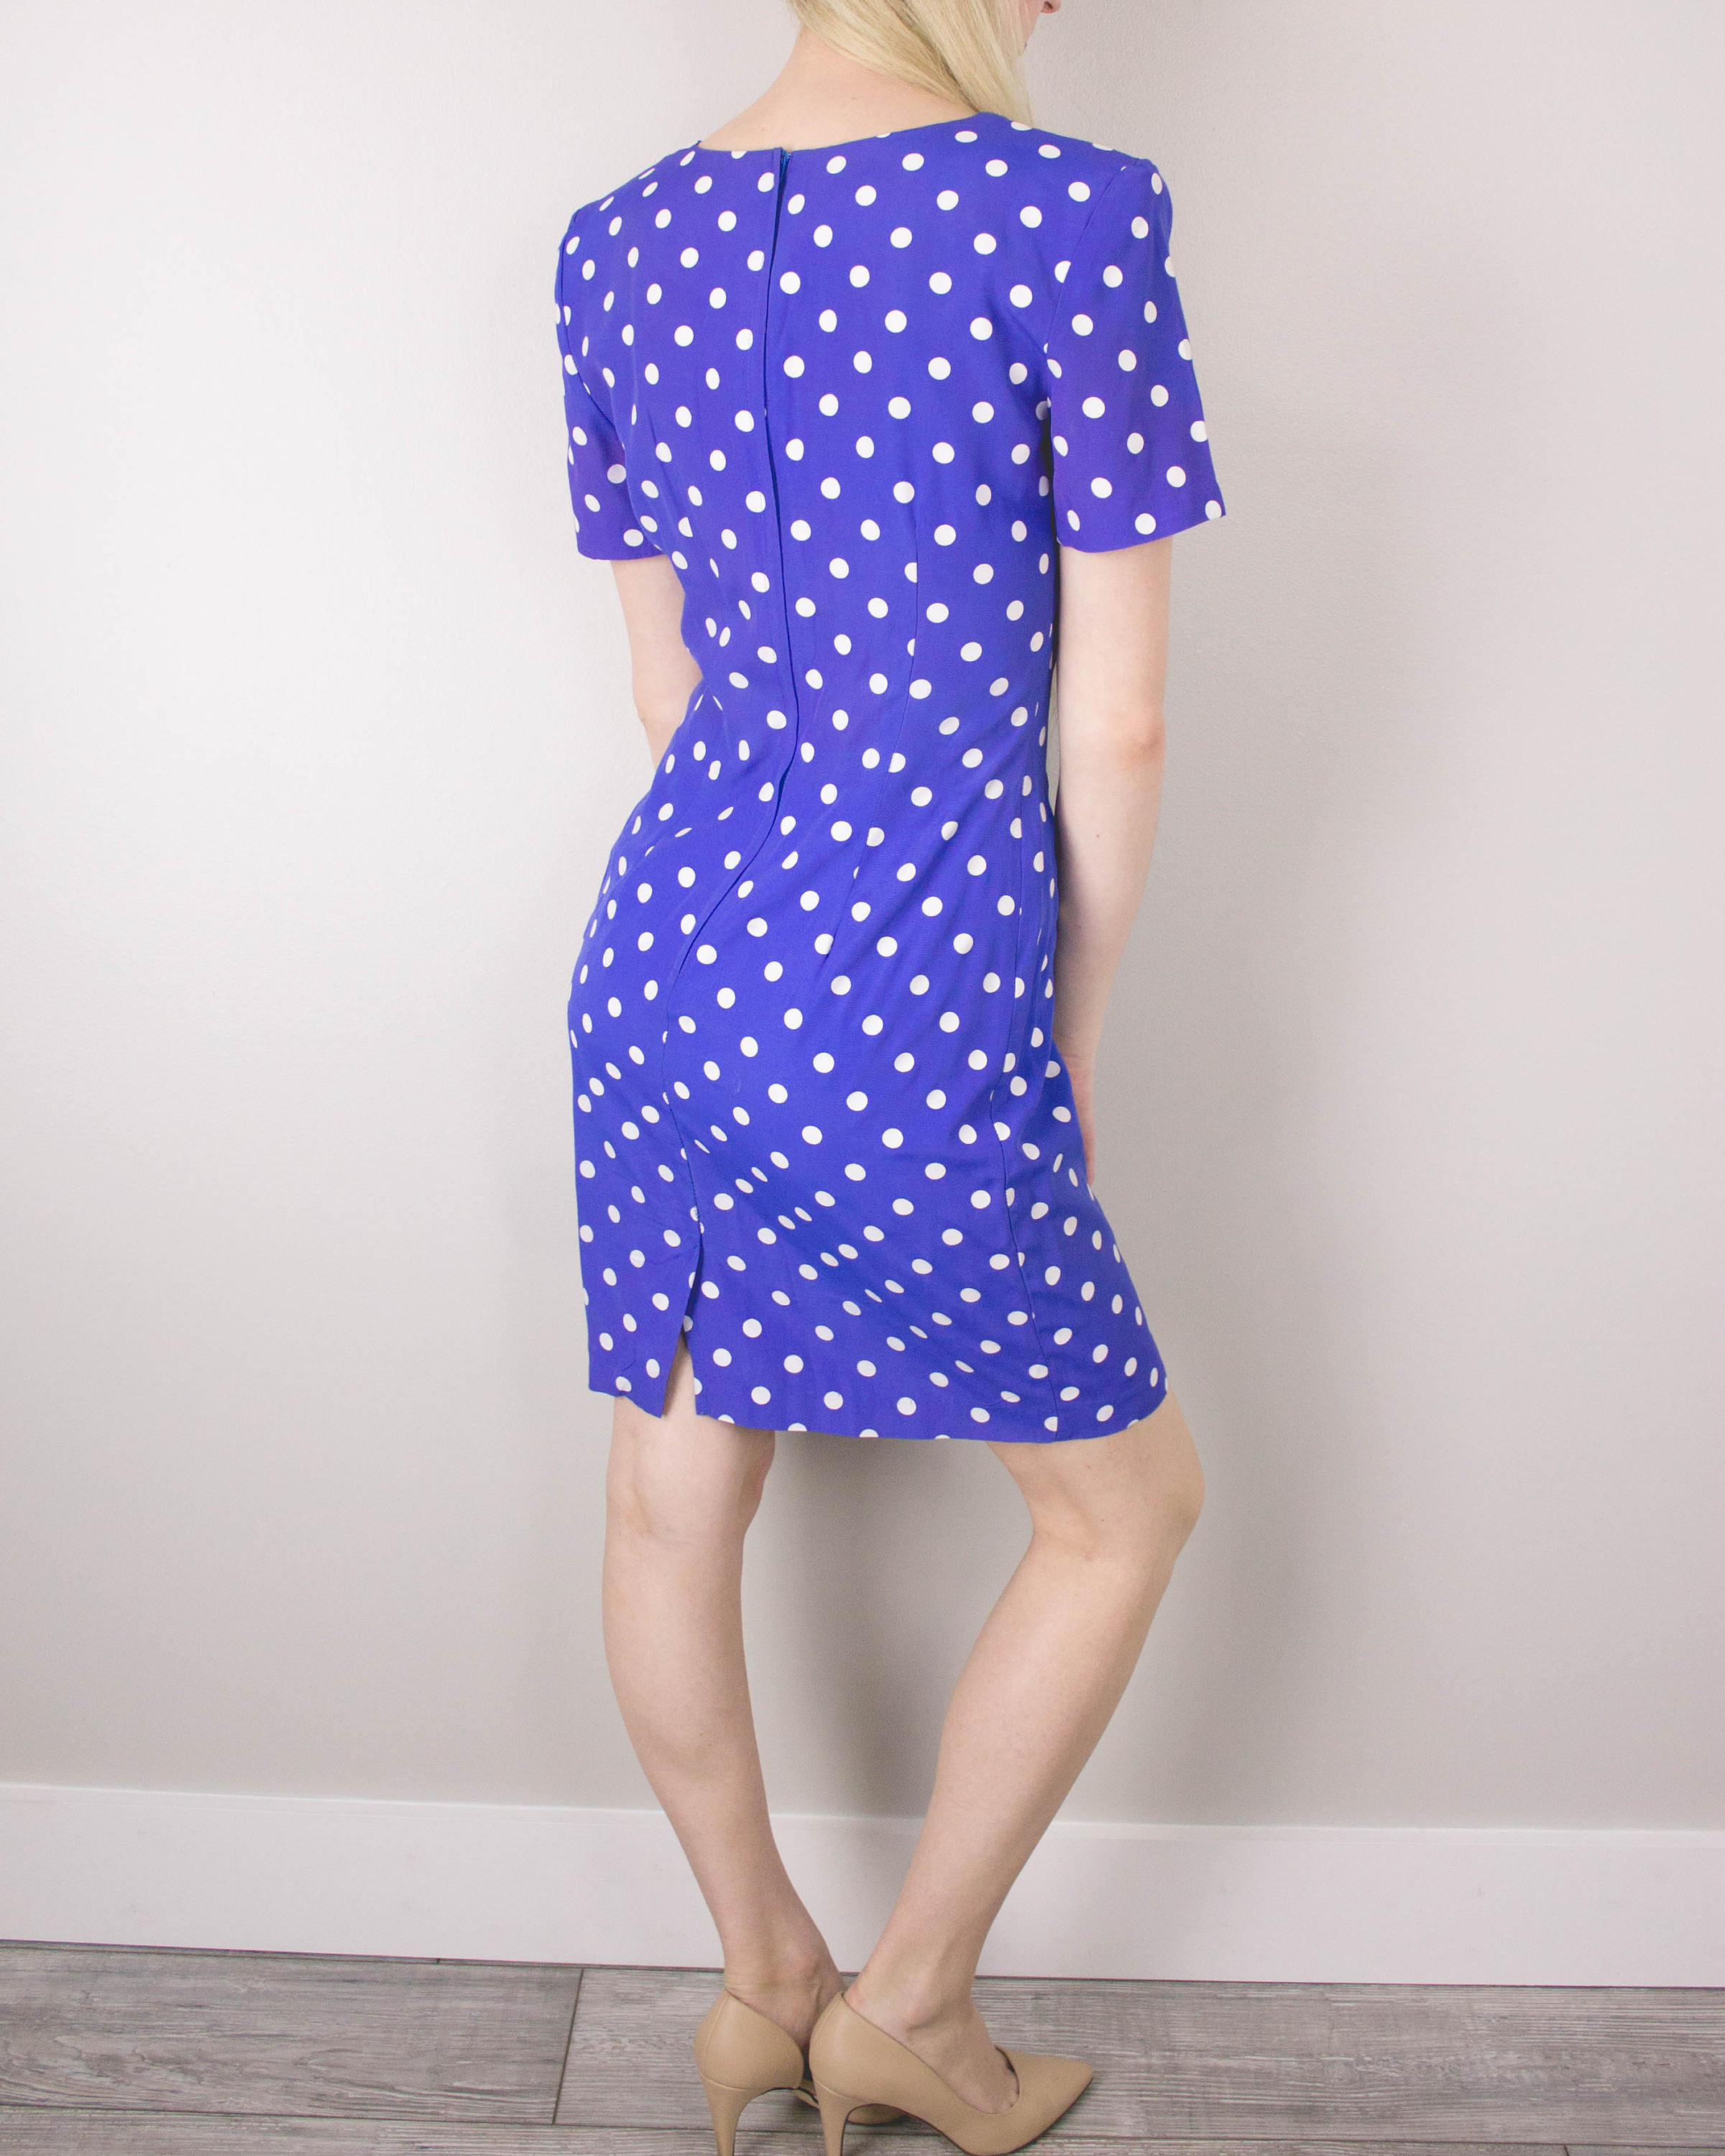 Vintage Polka Dot Dress